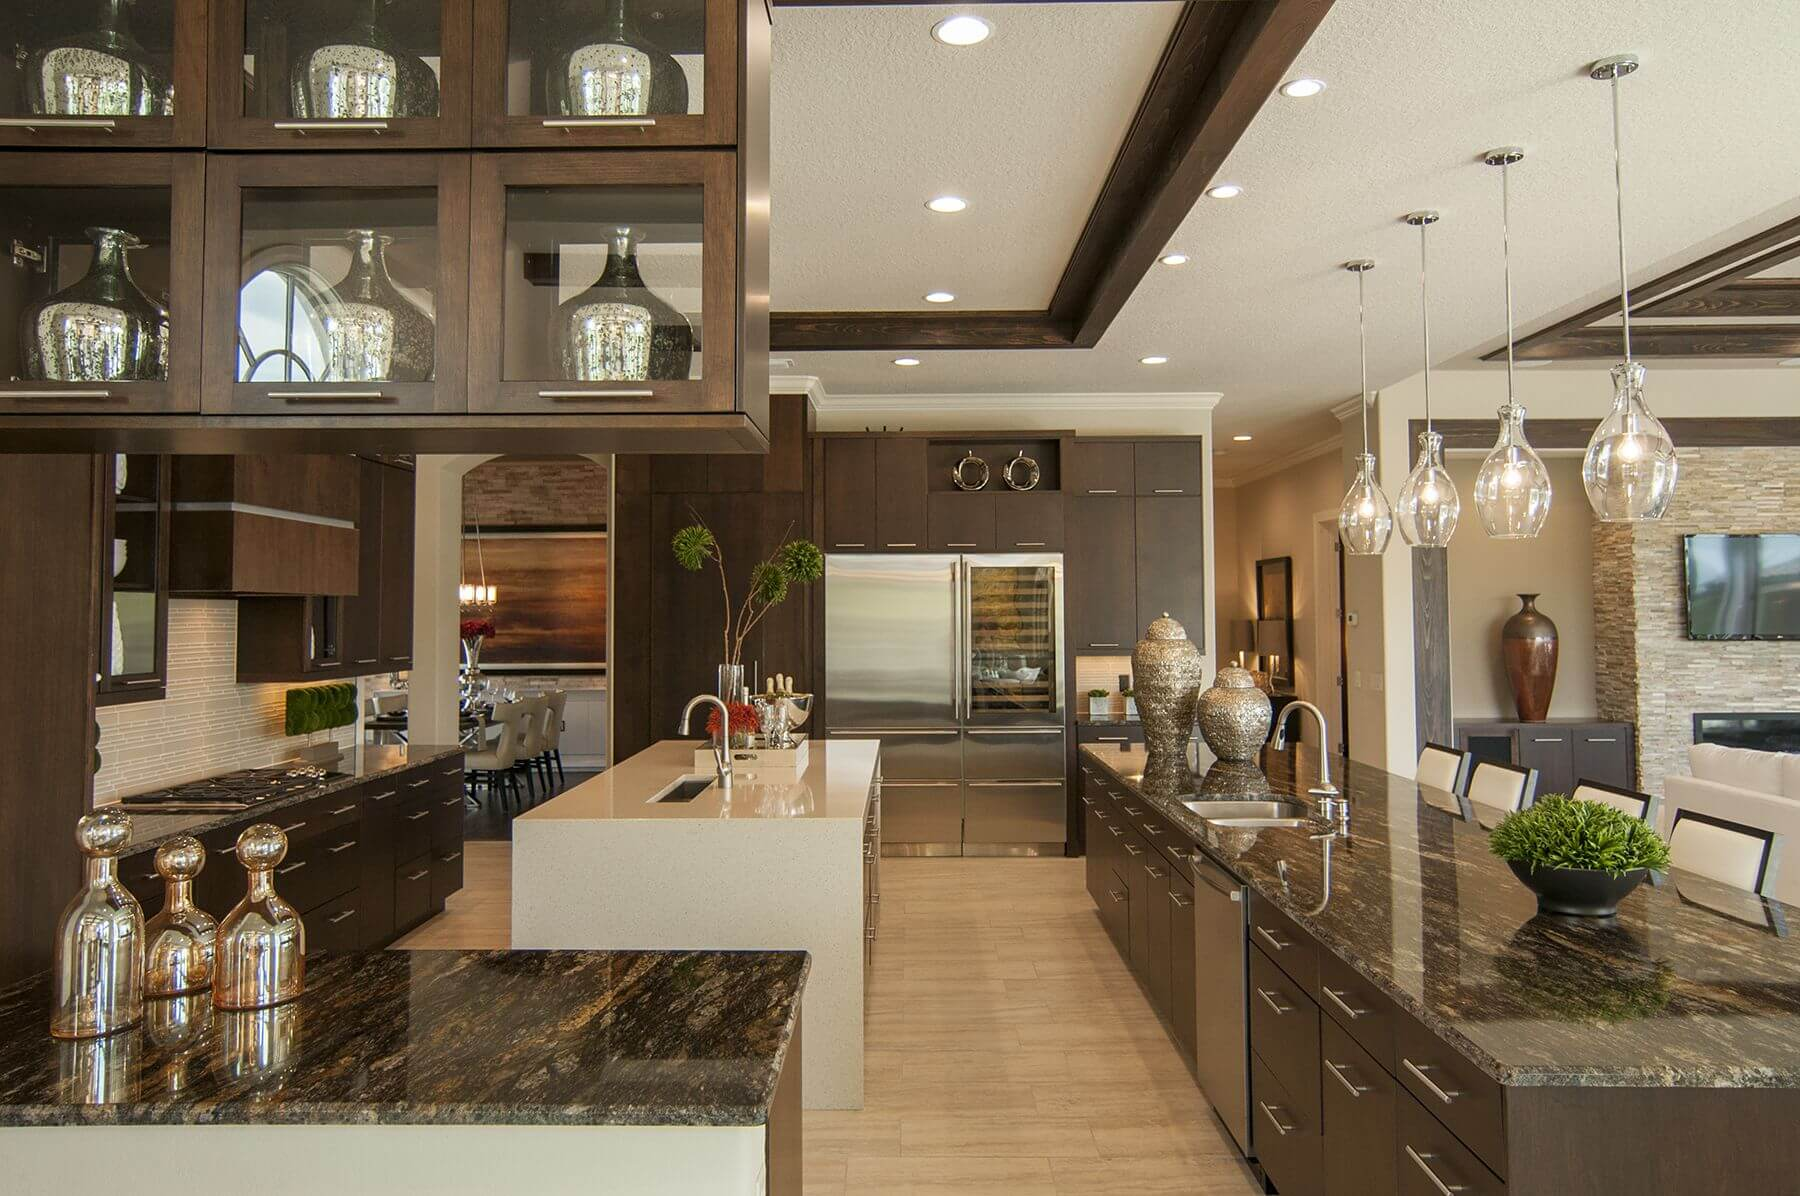 52 Dark Kitchens with Dark Wood OR Black Kitchen Cabinets (2019) Ultra Modern Kitchen Cabinets Wood on ultra-modern medicine cabinets, ultra-modern italian kitchens, ultra-modern light fixtures, dining room cabinets, ultra-modern storage cabinets, used map cabinets,